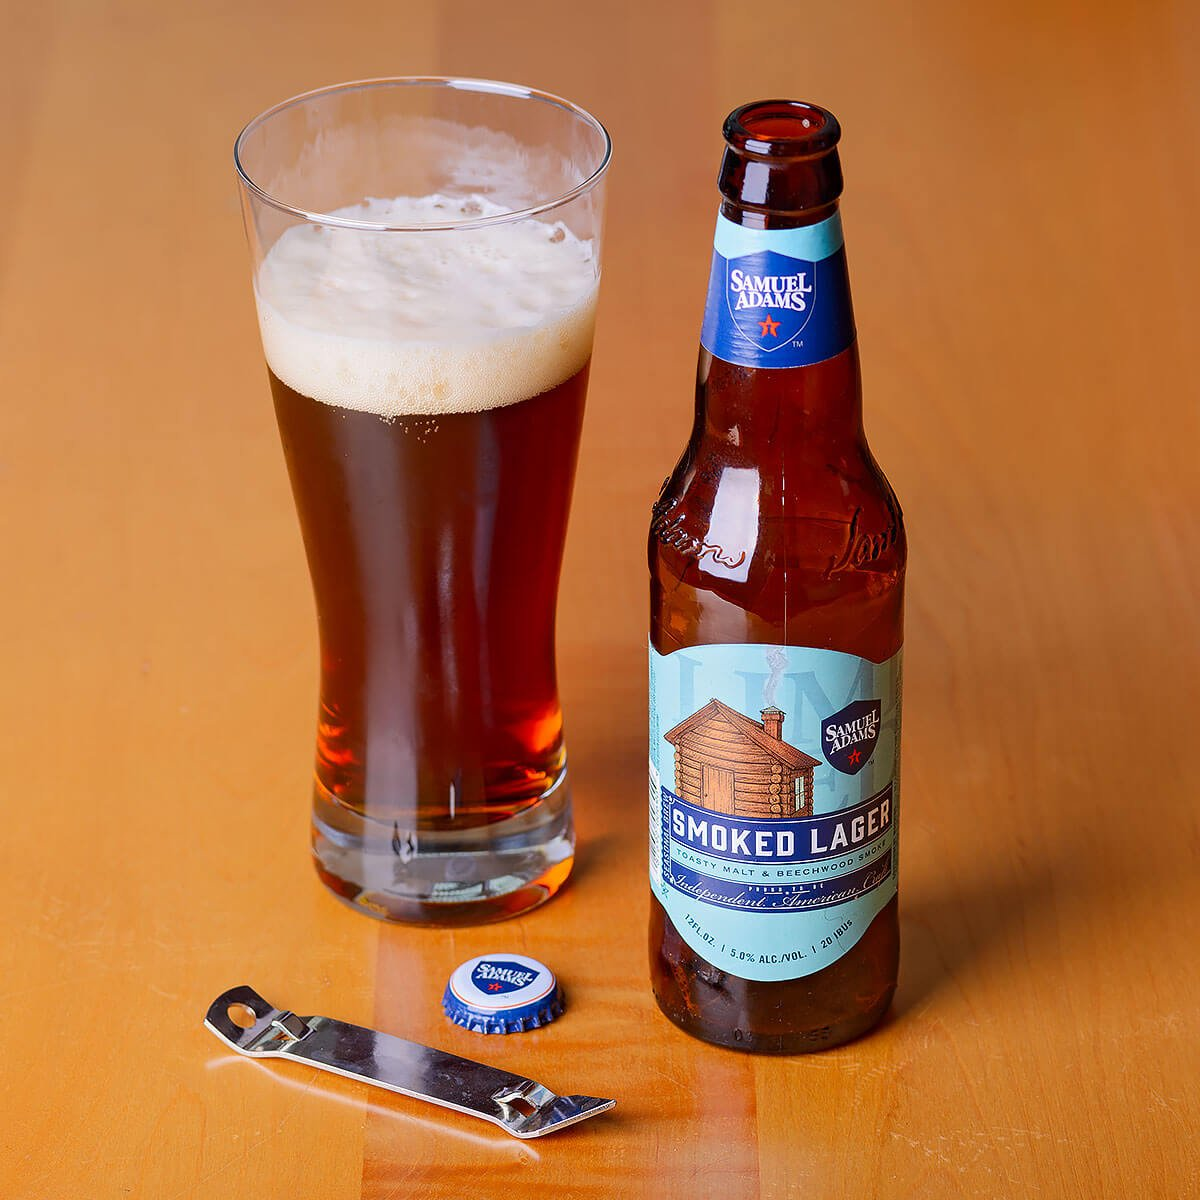 Samuel Adams Smoked Lager, a German-style Rauchbier by the Boston Beer Company